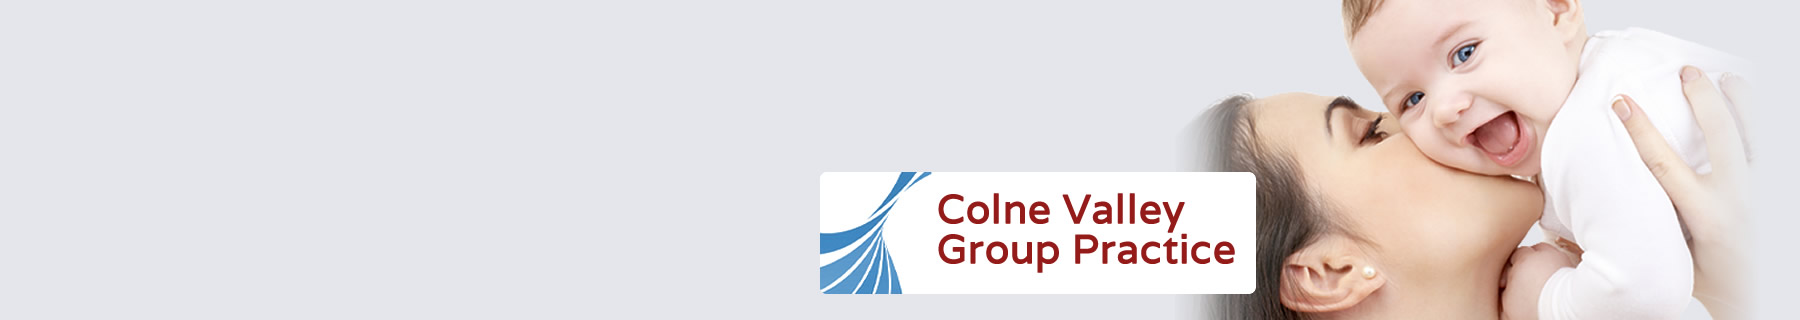 Surgery Connect provides Colne Valley Group Practice with more control over their call handling, with all phone calls being recorded